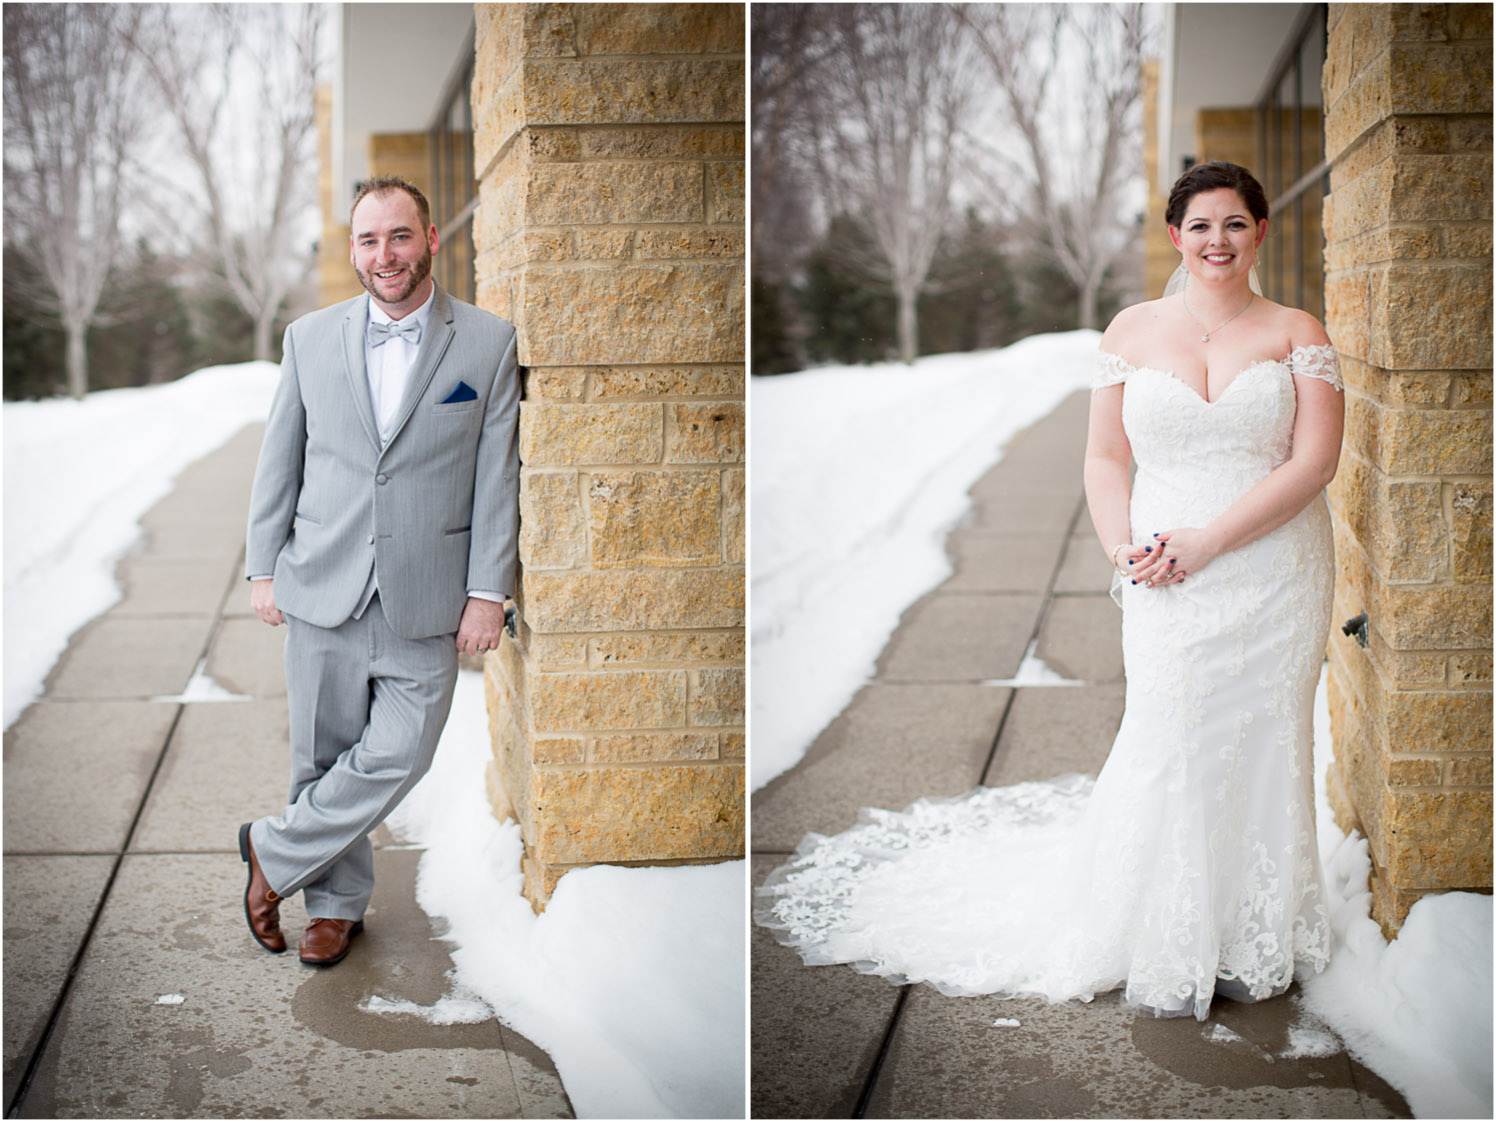 11-eagan-community-center-weddings-minnesota-winter-wedding-bride-groom-portraits-mahonen-photography.jpg